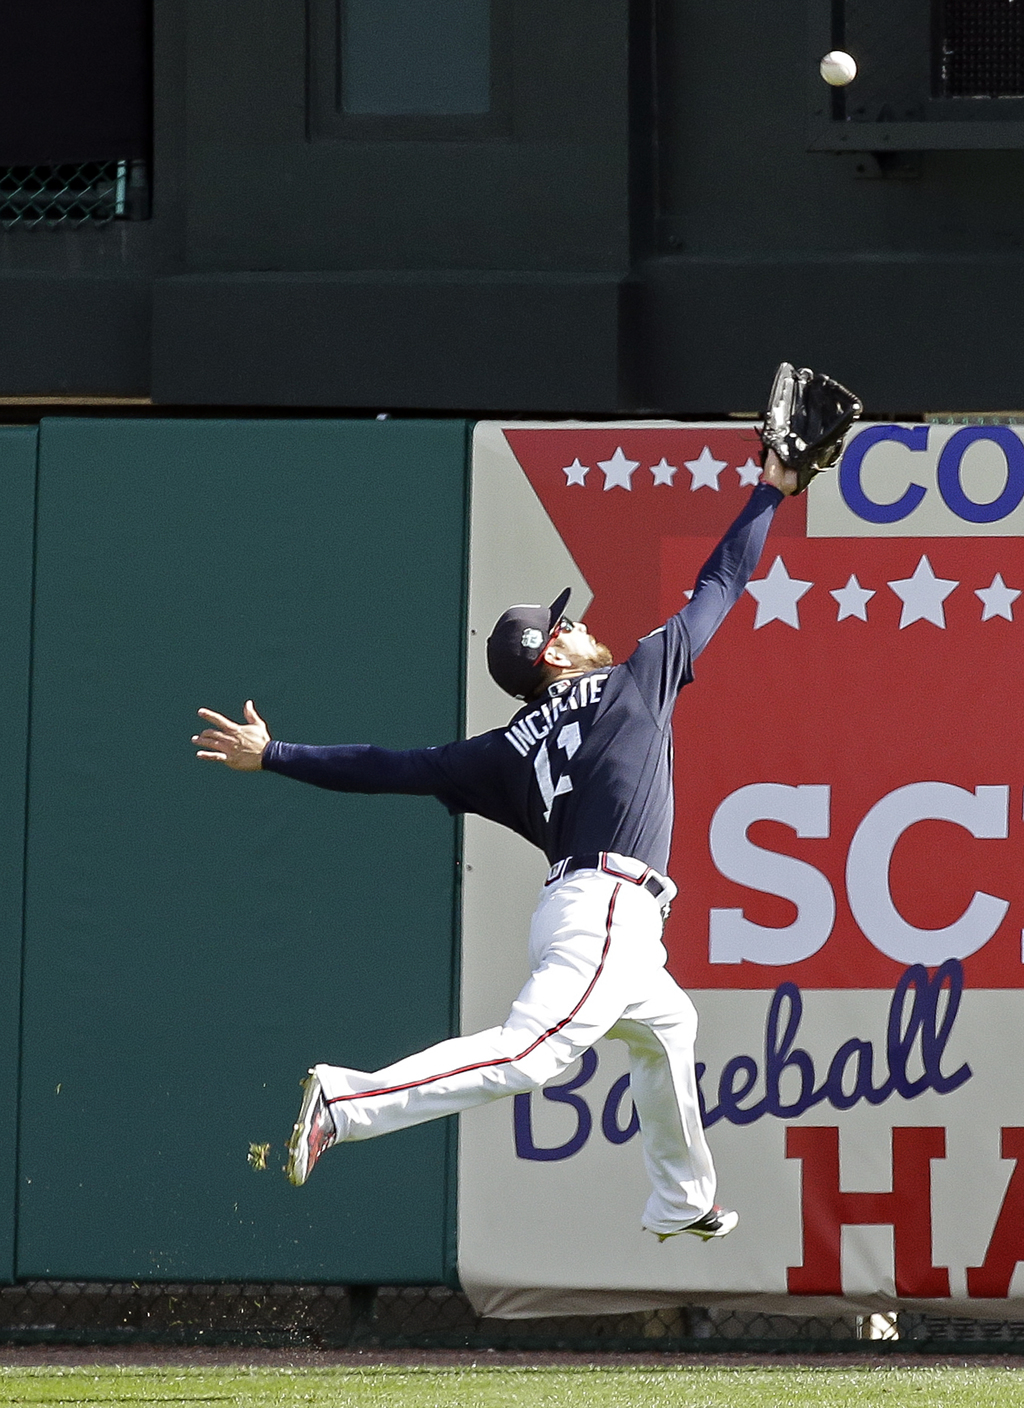 ADDS INNING - Atlanta Braves center fielder Ender Inciarte (11) leaps but can't make the catch on a fly ball over his head during the f...